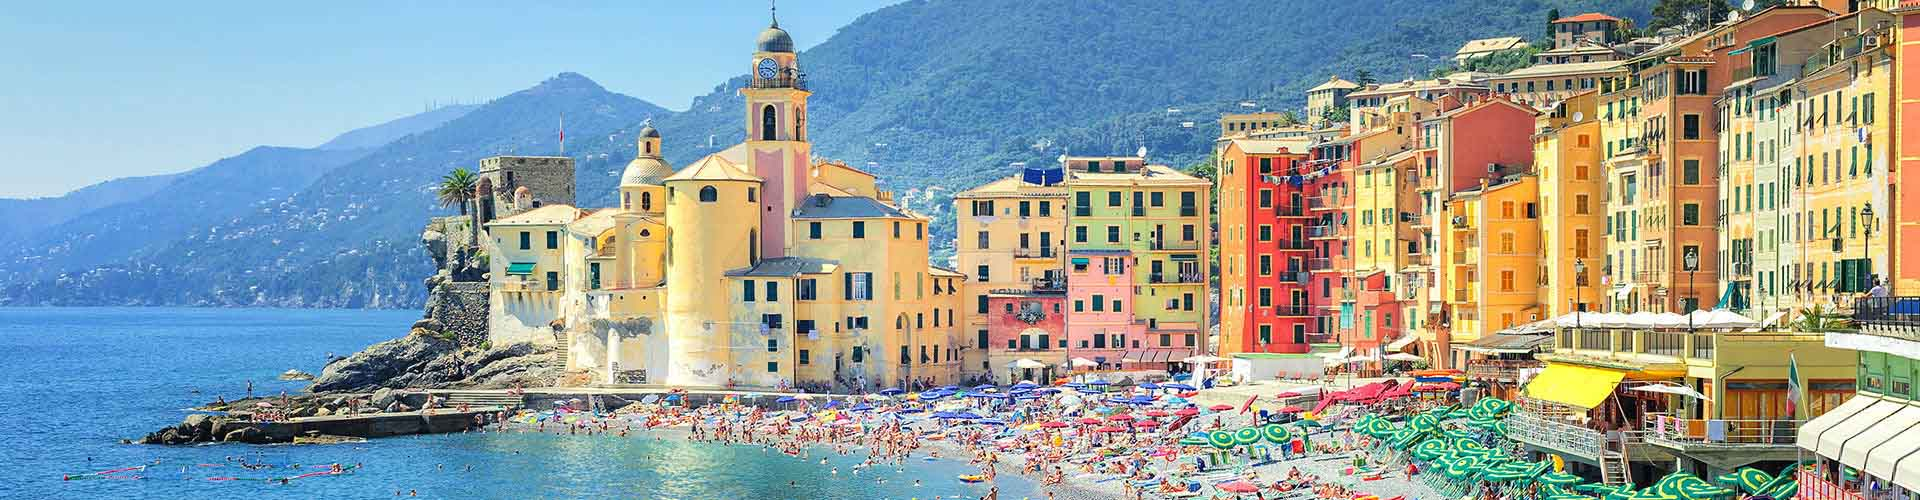 Genoa – Camping in San Vincenzo. Maps of Genoa, Photos and Reviews for each camping in Genoa.